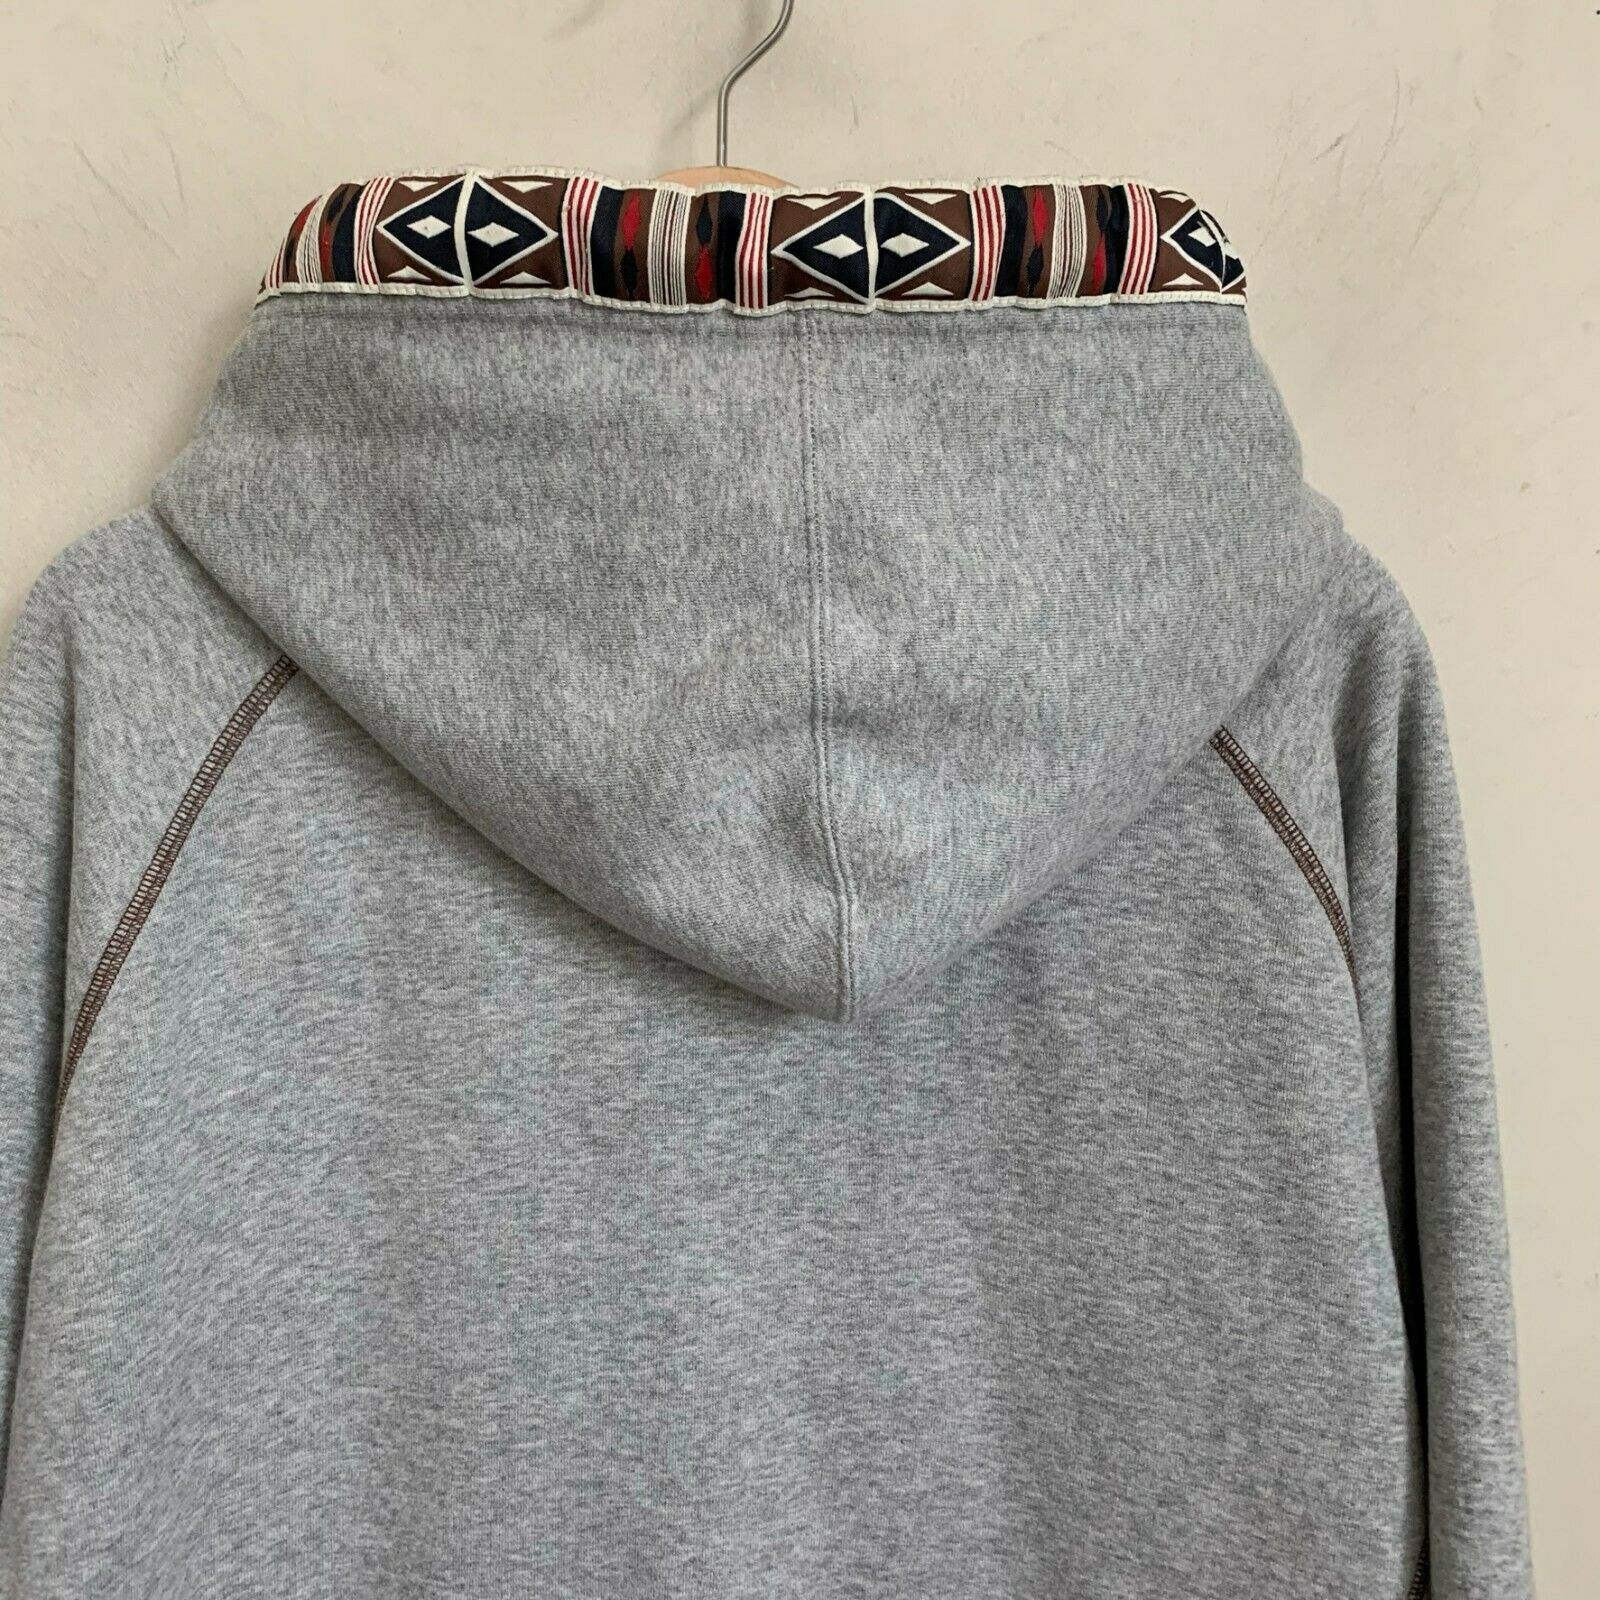 Akademiks Hoodie Native Warrior Indian Gray Zip Front Pockets Drawcord Size XL